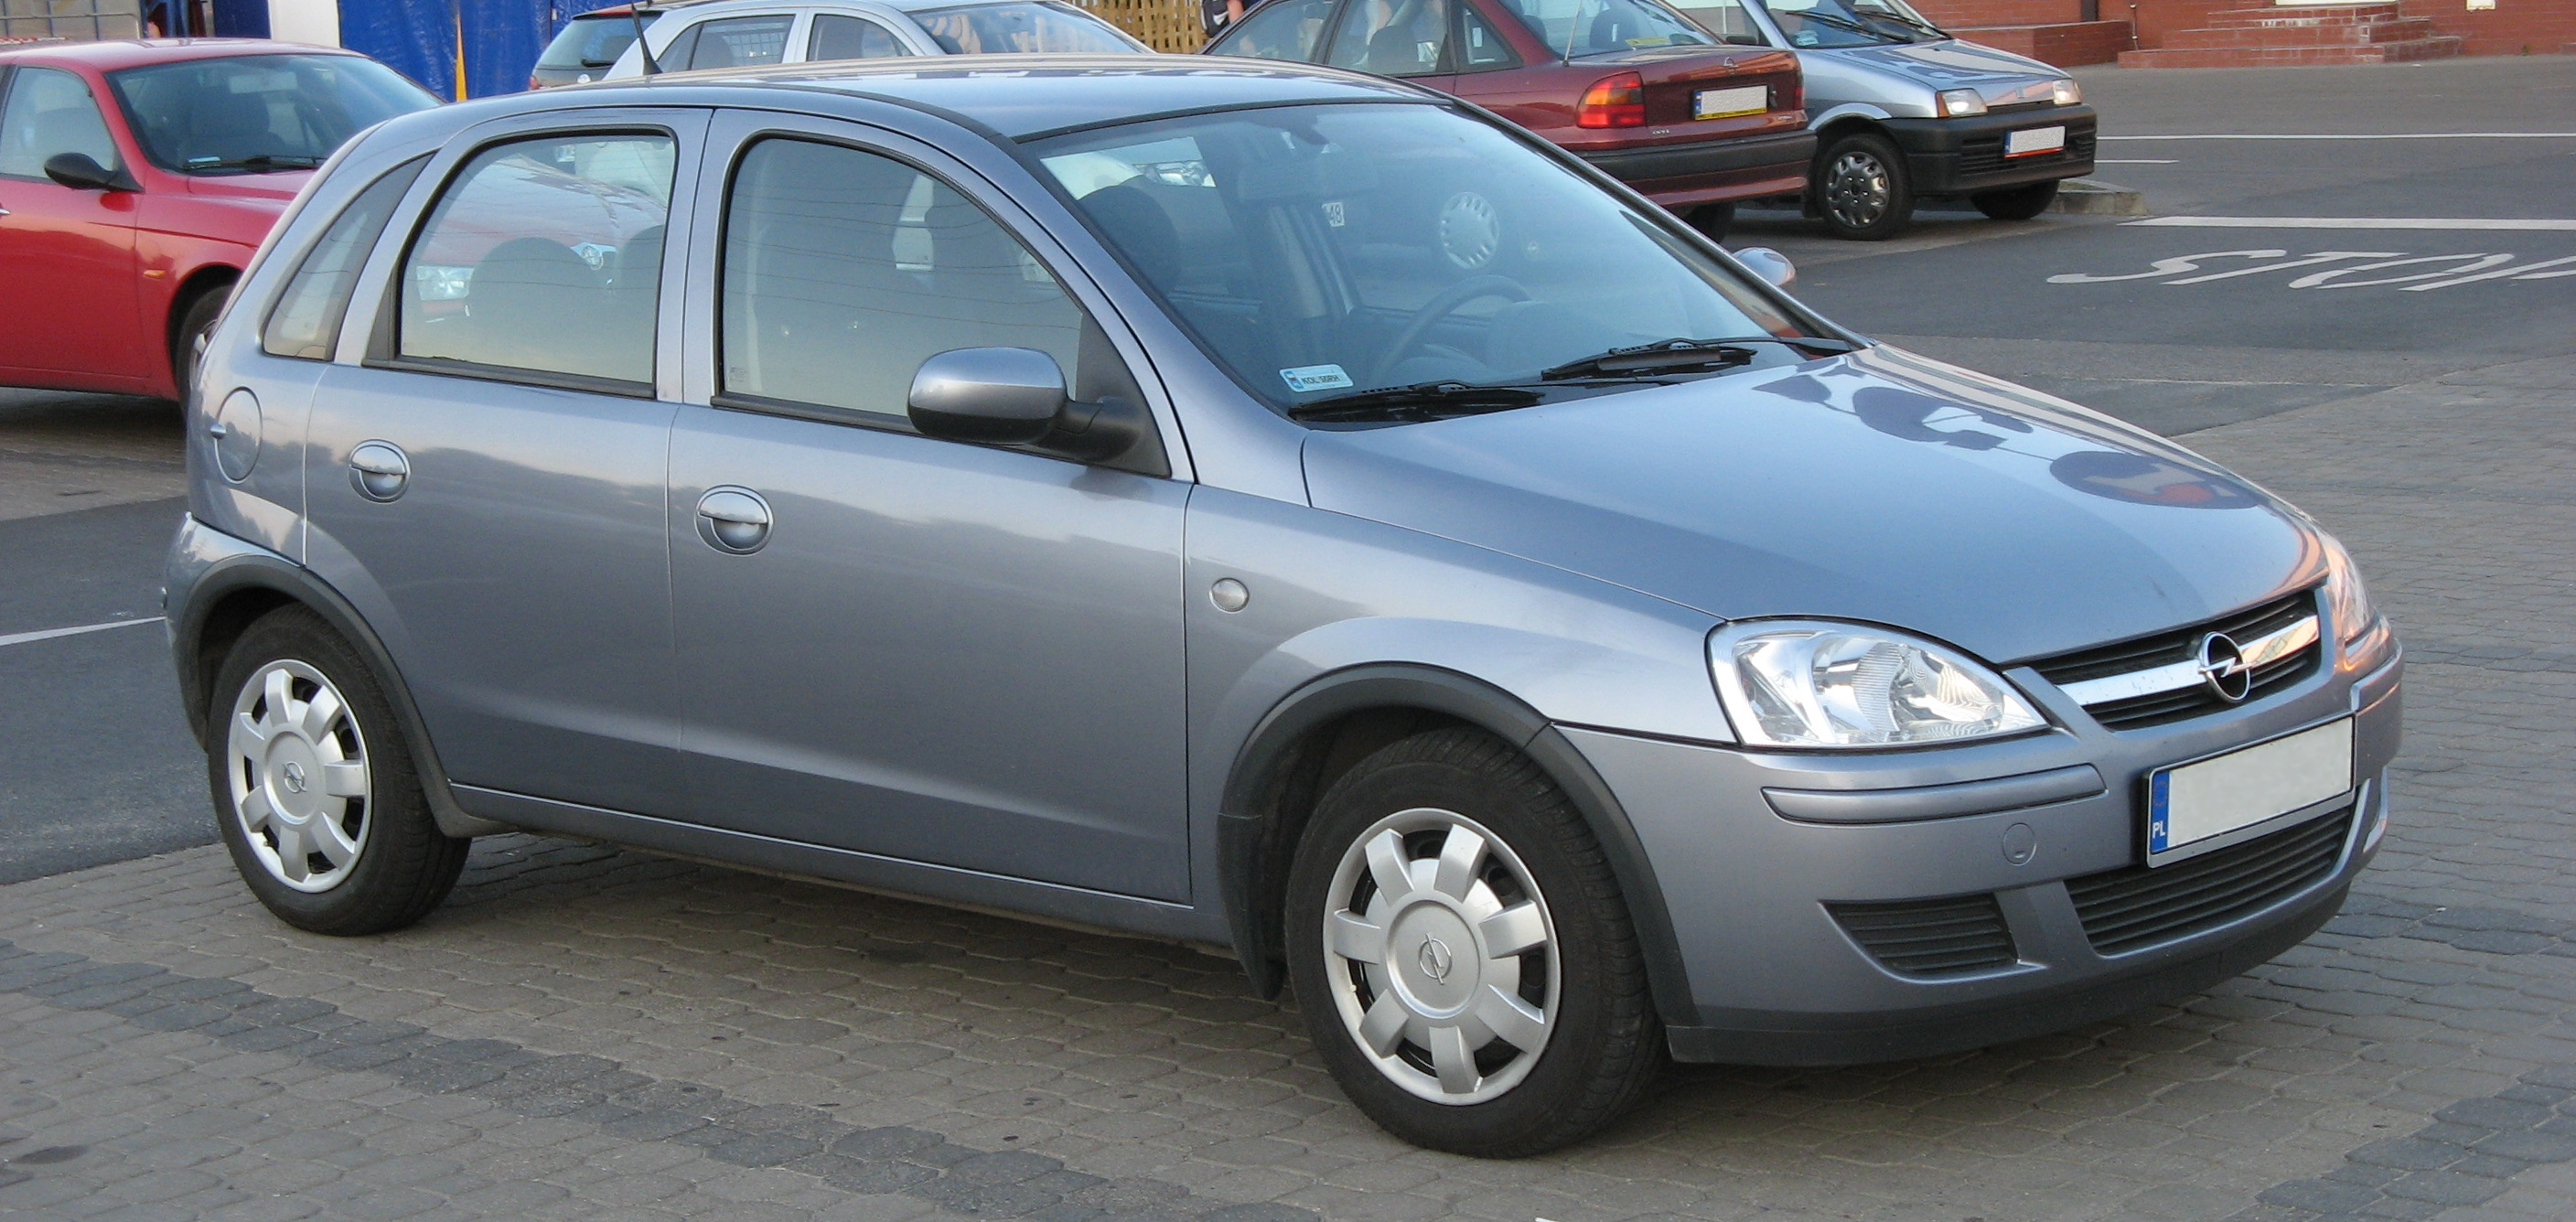 Opel cors photo - 2